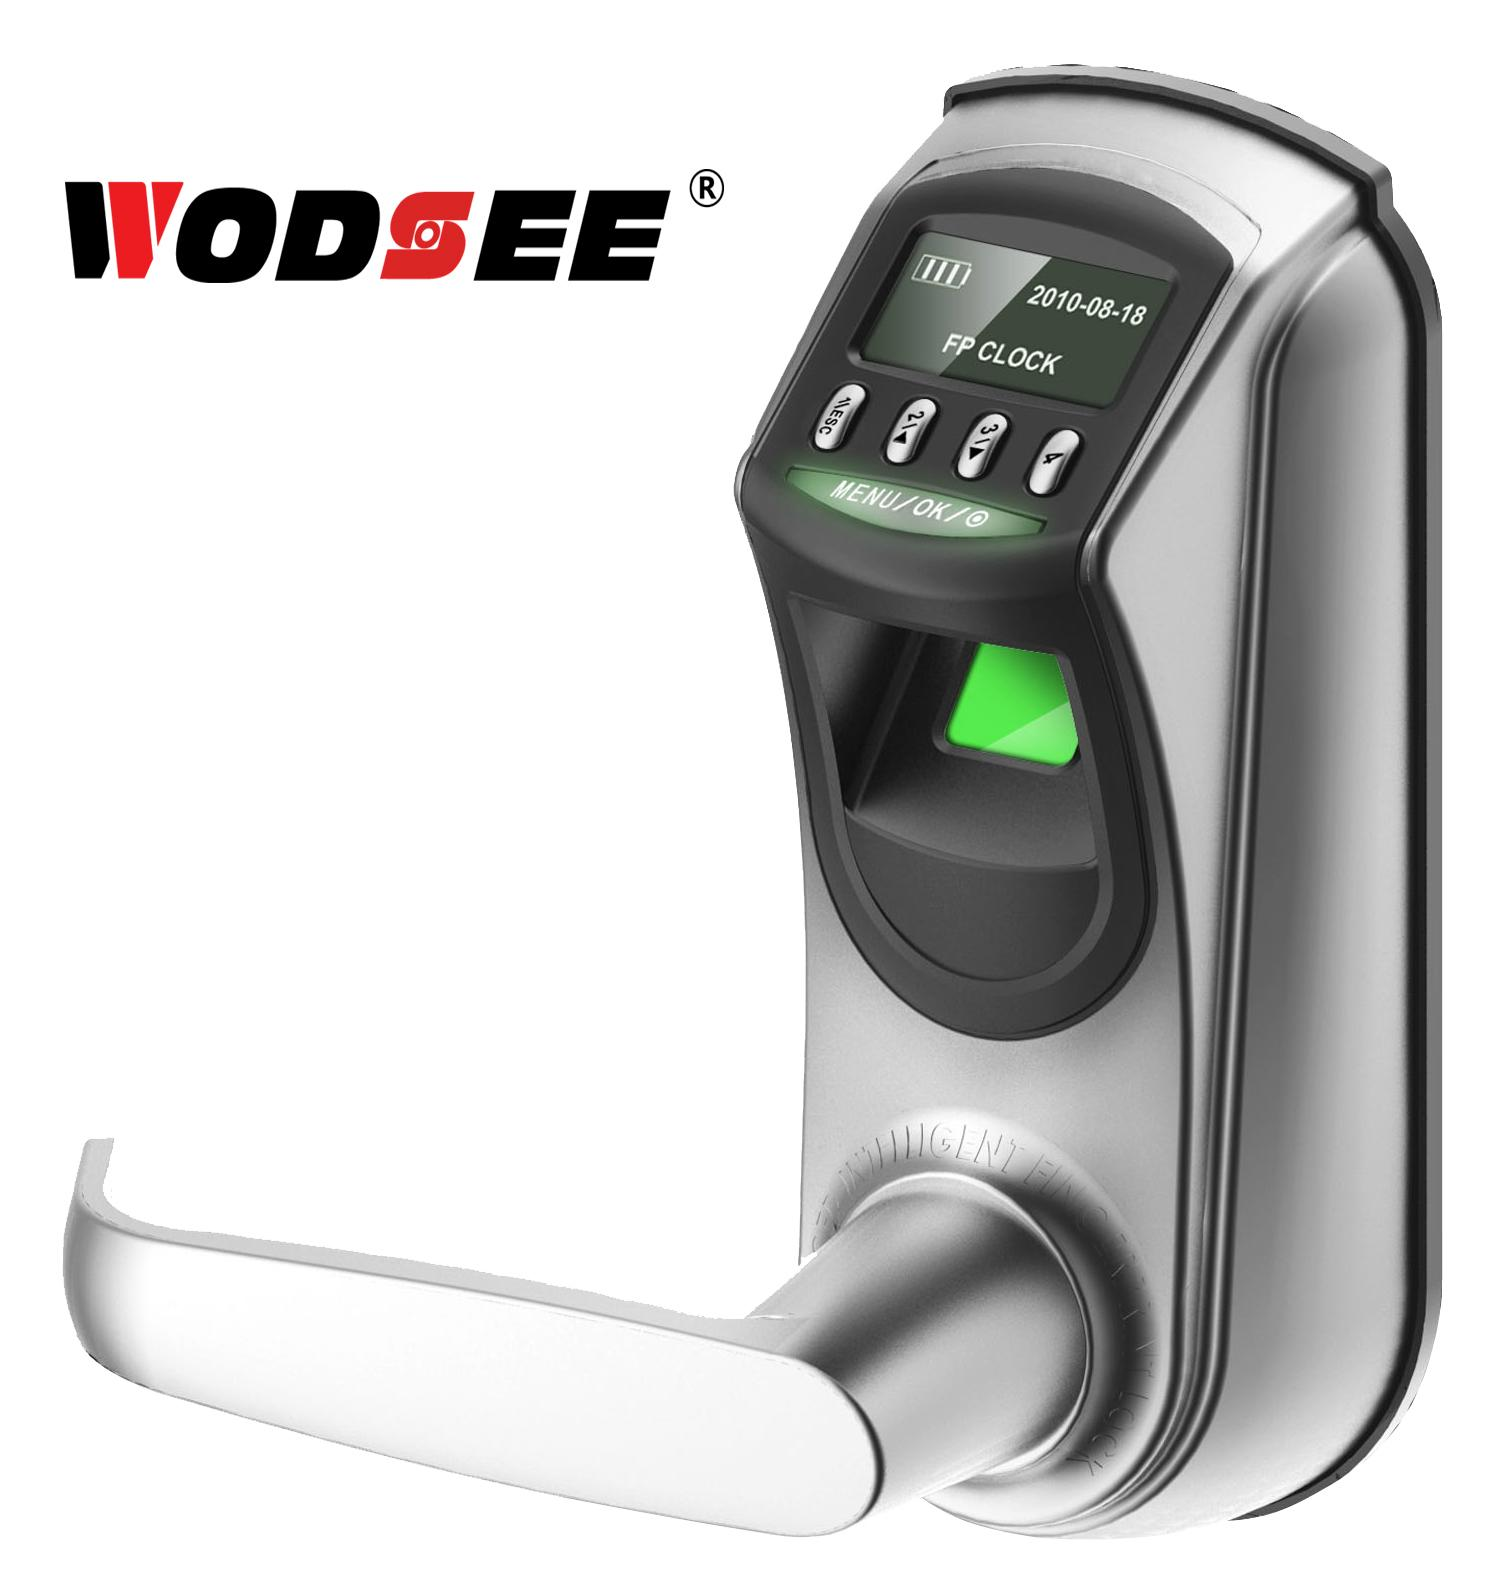 China Supplier Idle handle design Electronic Combination Lock digital hotel home 1